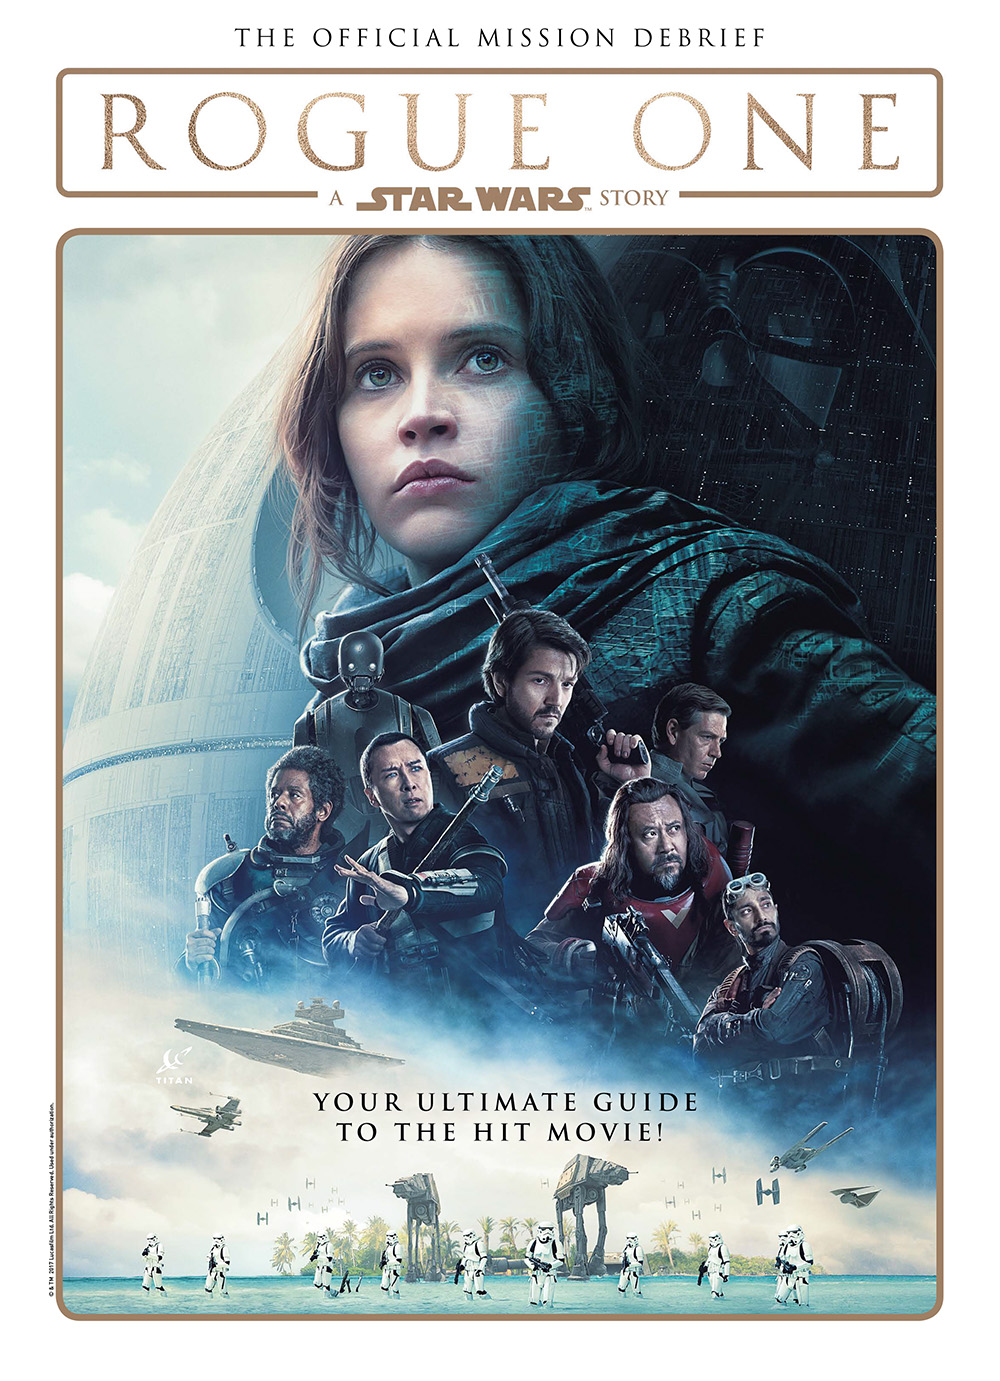 Rogue One: A Star Wars Story - The Official Mission Debrief (Hardcover)